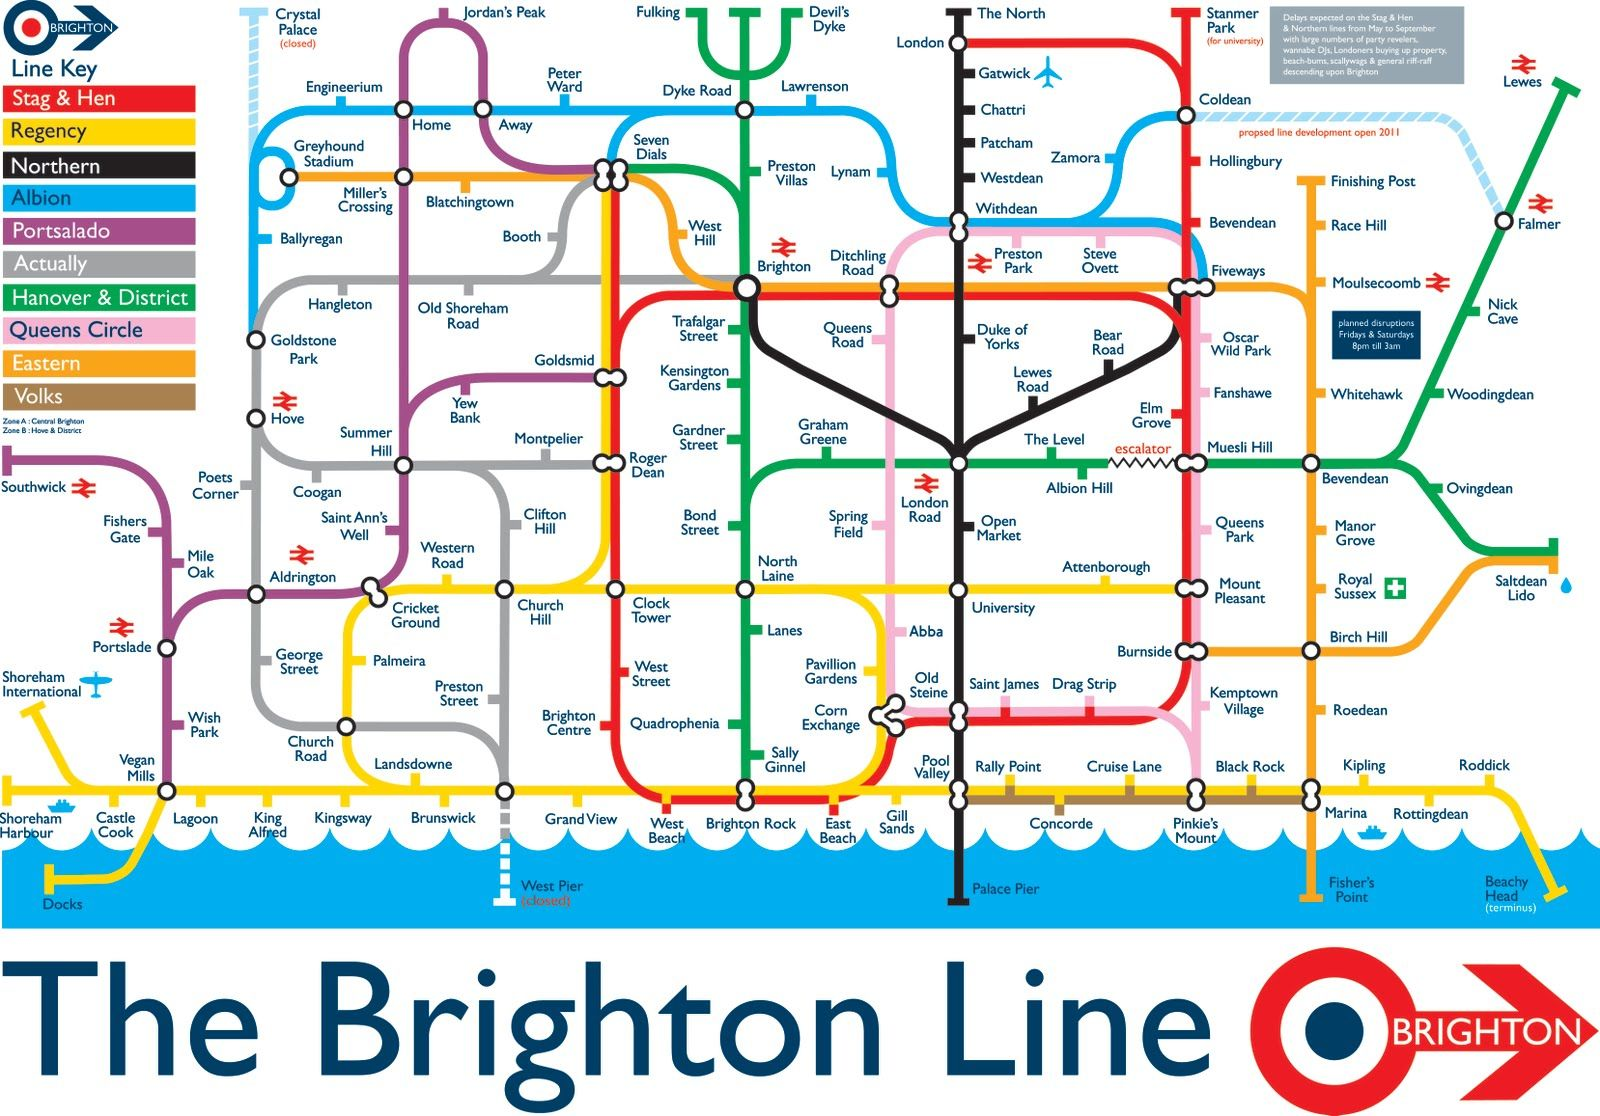 Map Of England Brighton.The Brighton Line By Sean Sims Illustrations In 2019 Brighton